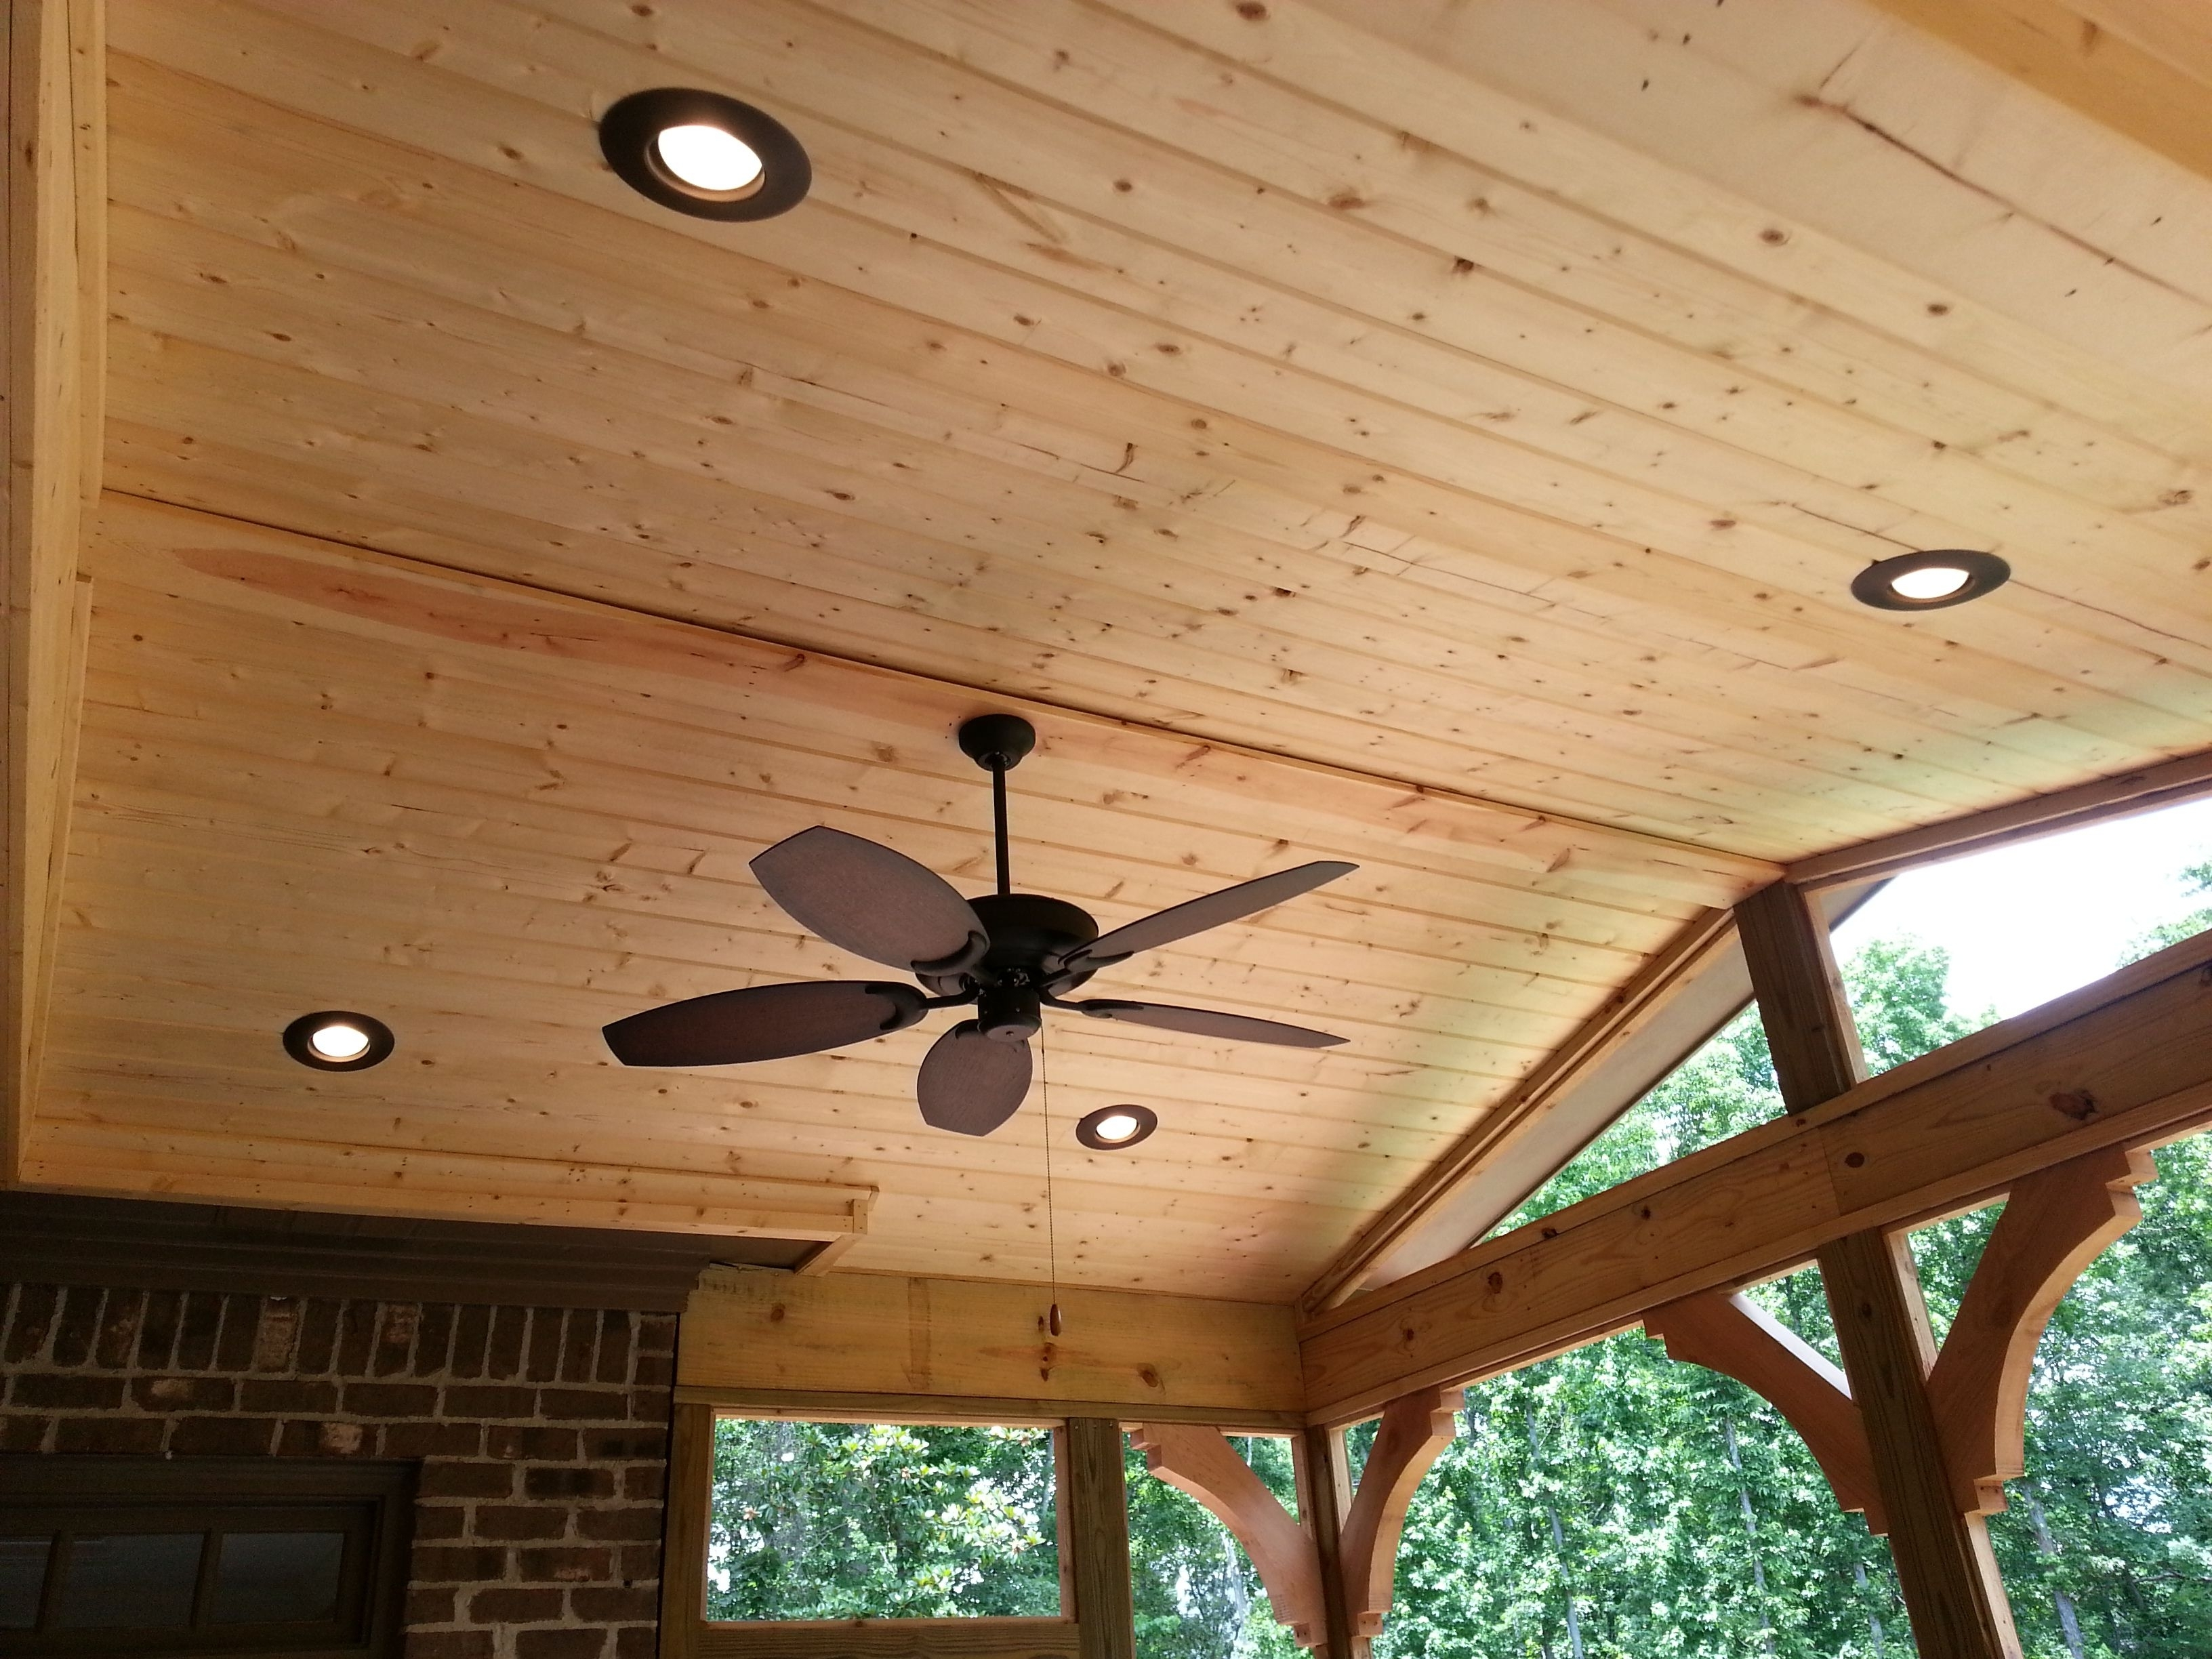 Outdoor Ceiling Fans For Screened Porches Pertaining To 2018 Finished Ceiling With Ceiling Fan And Can Lights – Design Ideas (View 20 of 20)